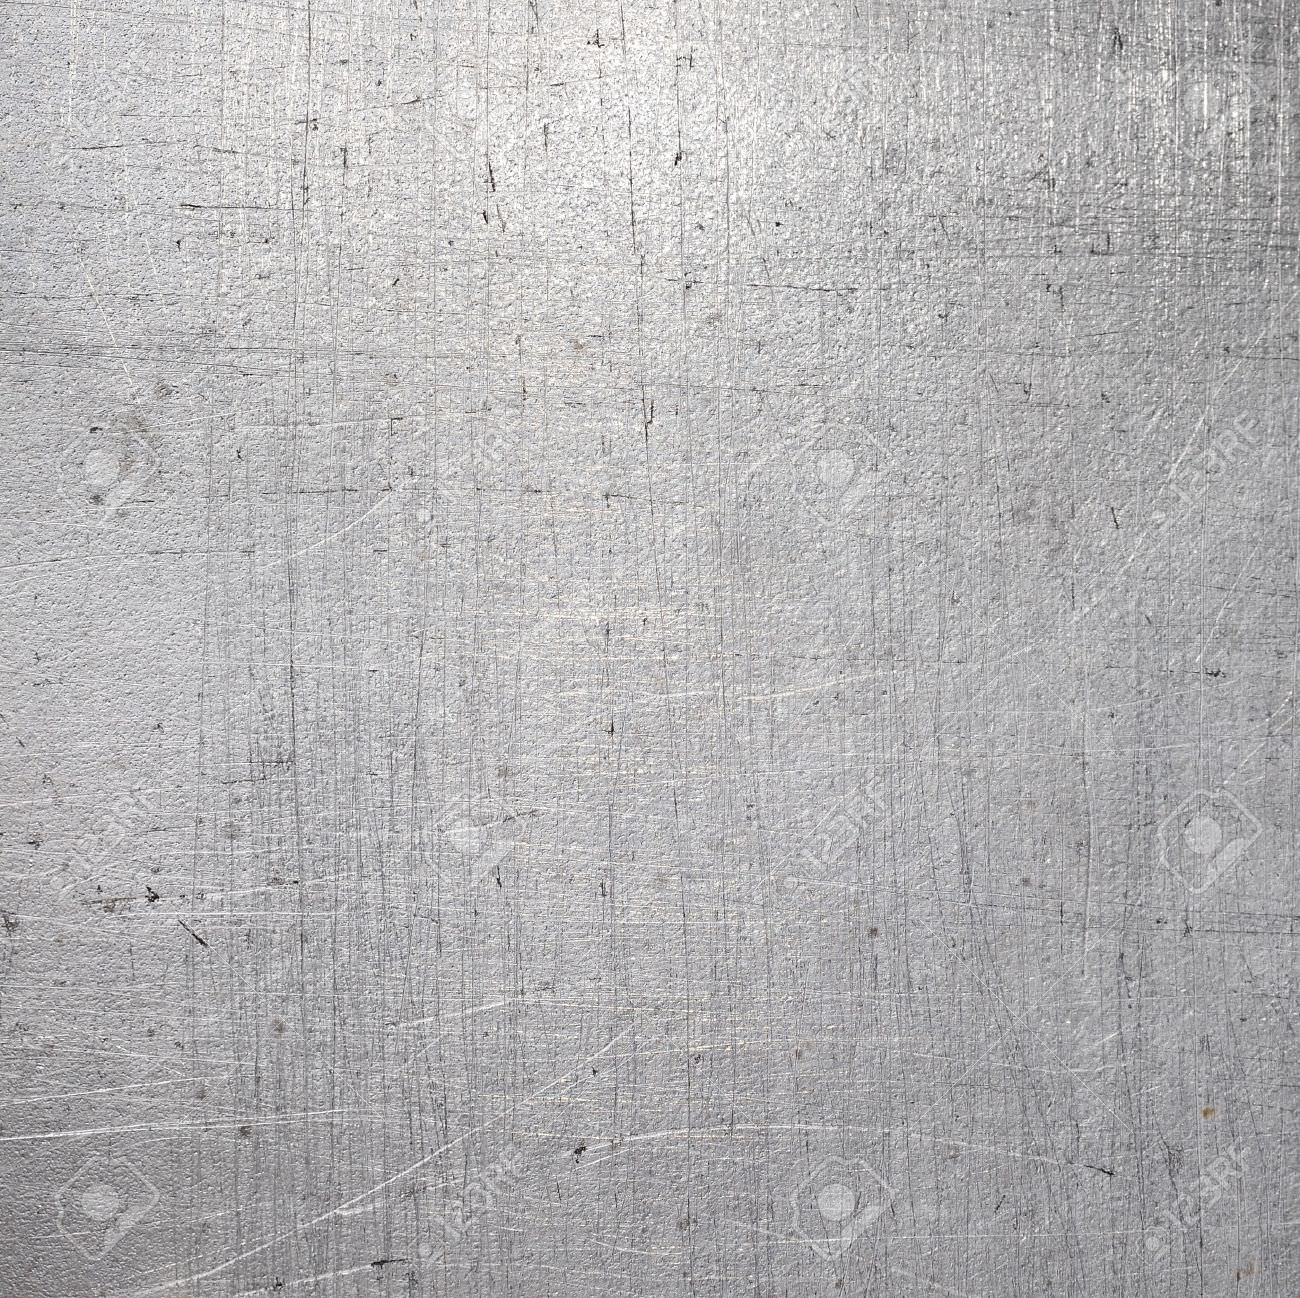 Scratched Silver Texture